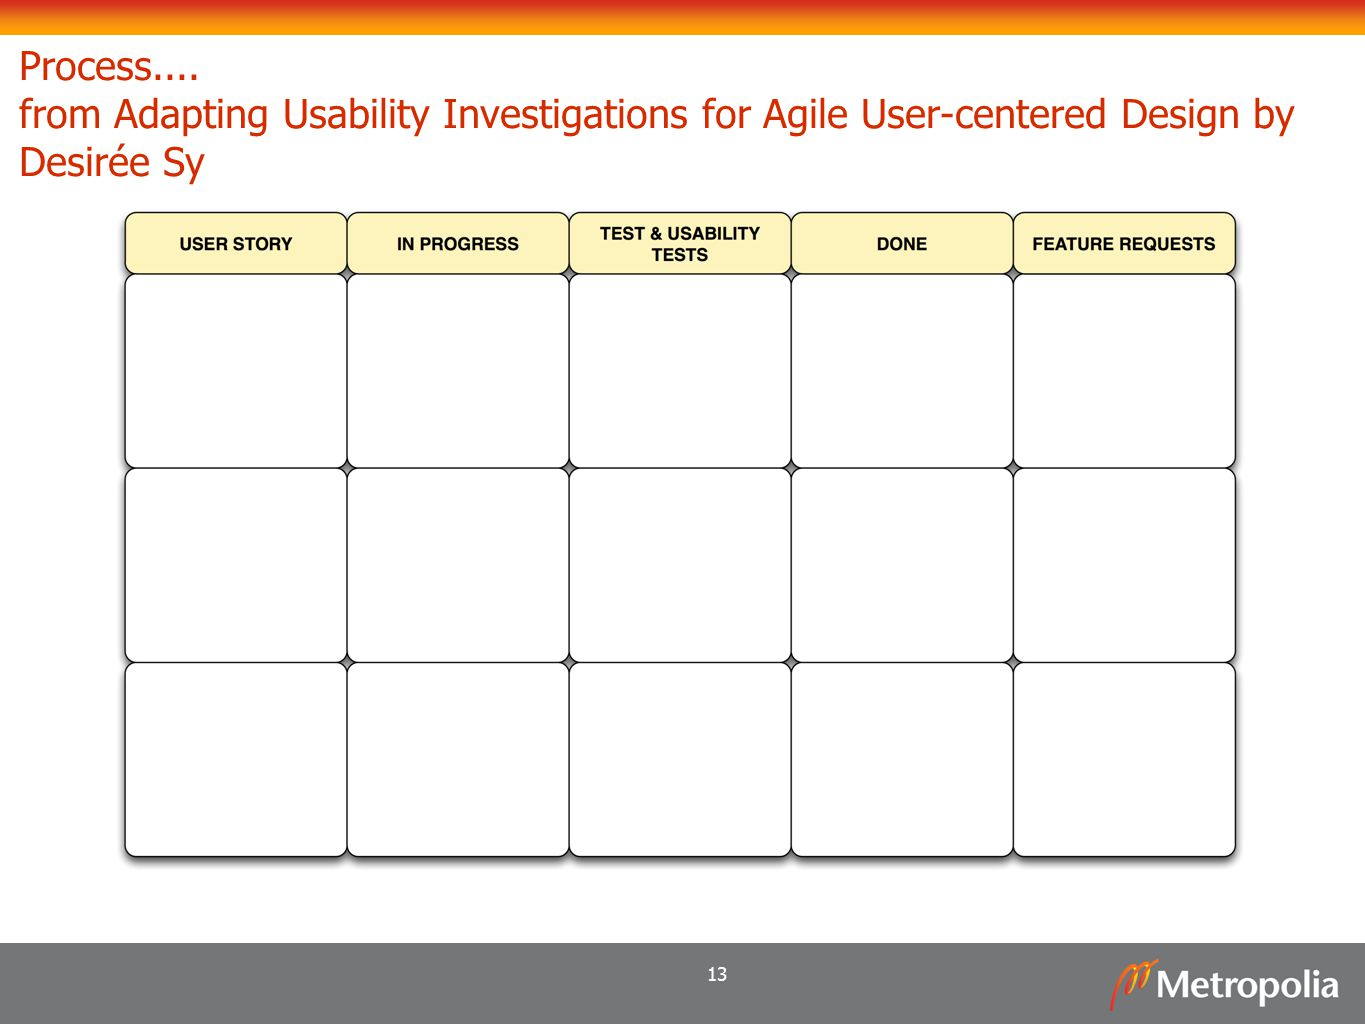 Process.... from Adapting Usability Investigations for Agile User-centered Design by Desirée Sy